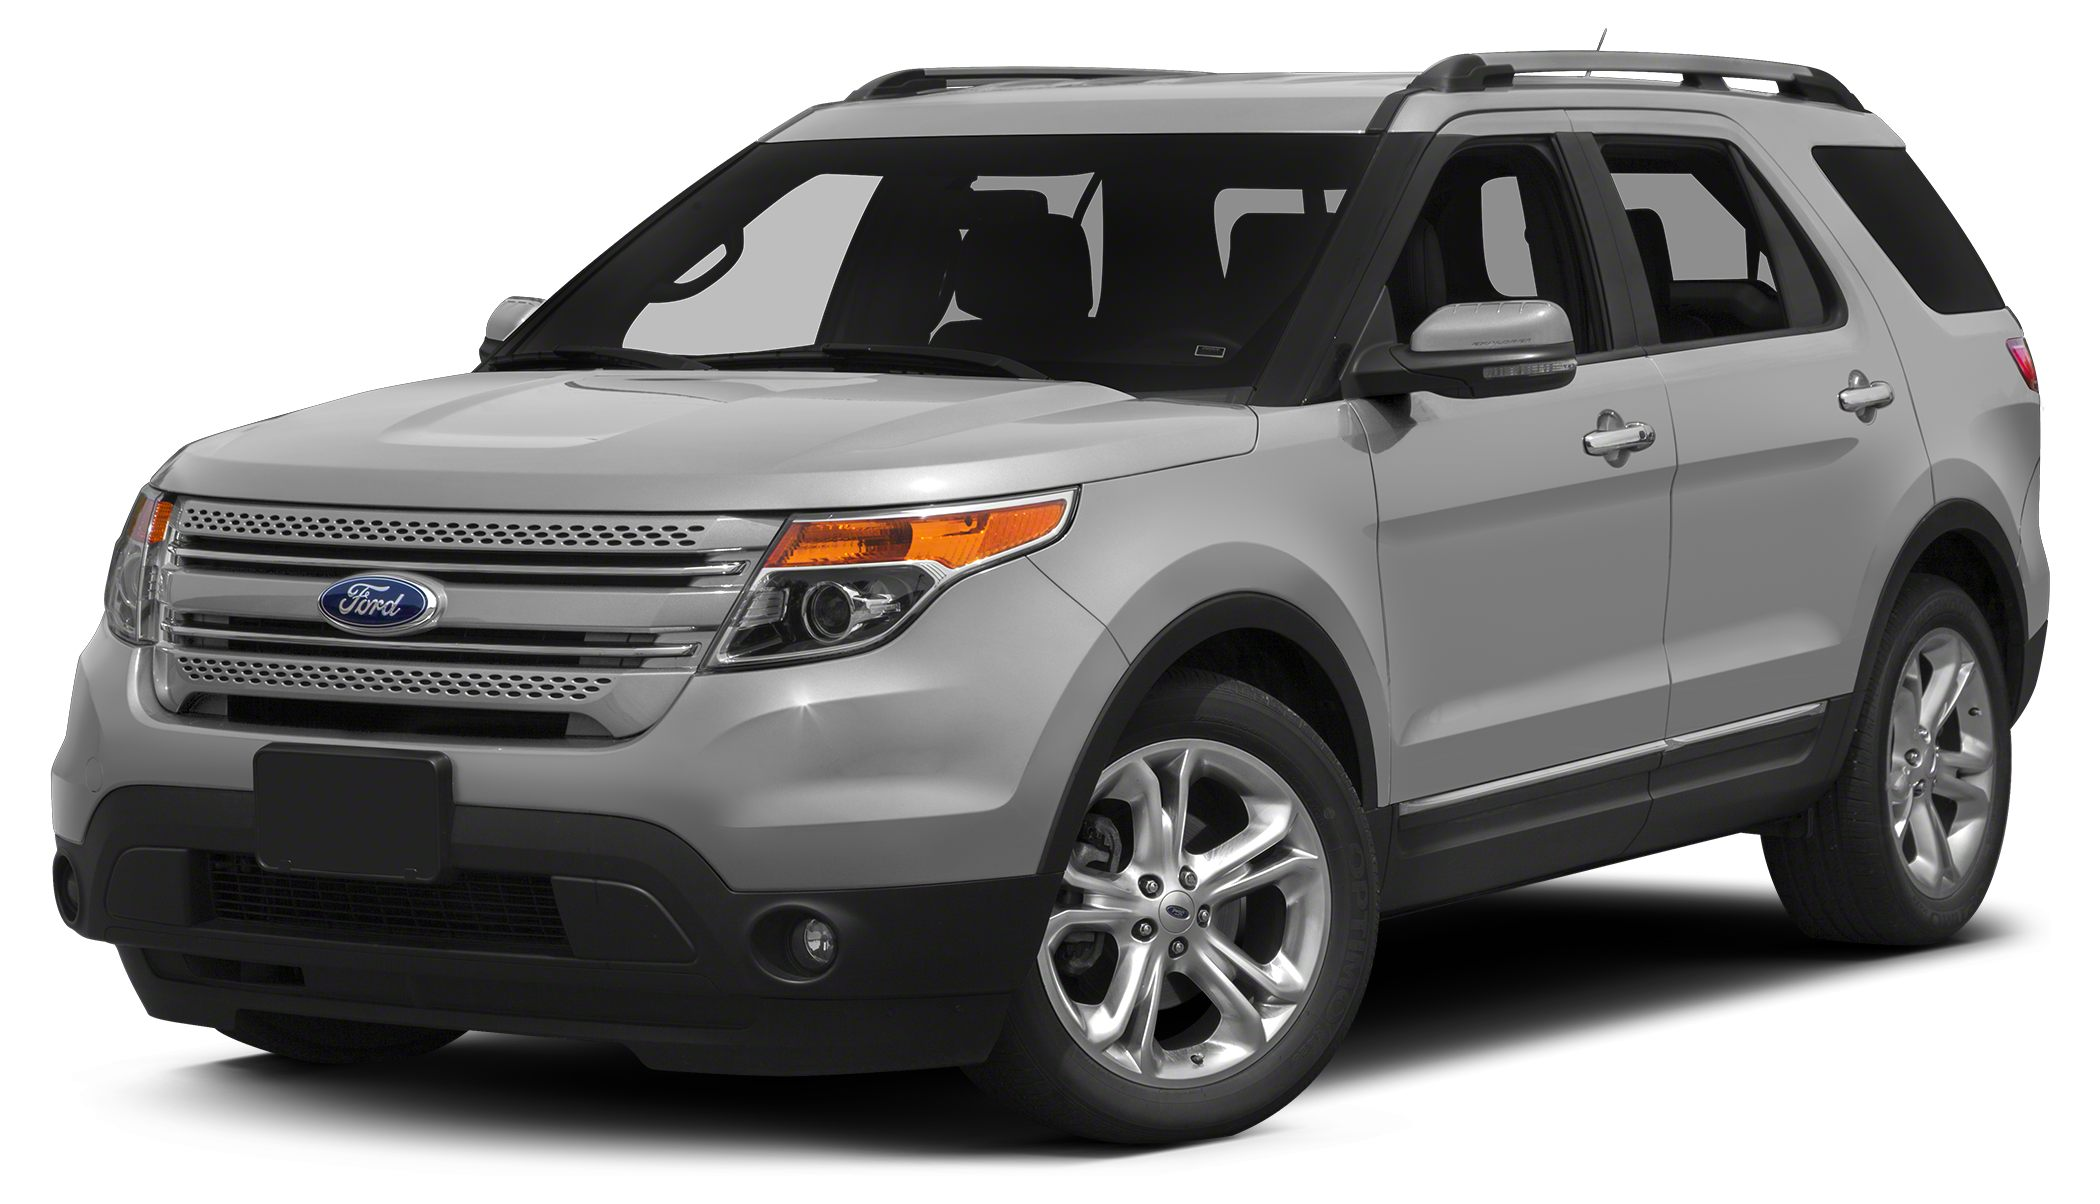 2015 Ford Explorer Limited Proudly serving manatee county for over 60 years offering Cars Trucks